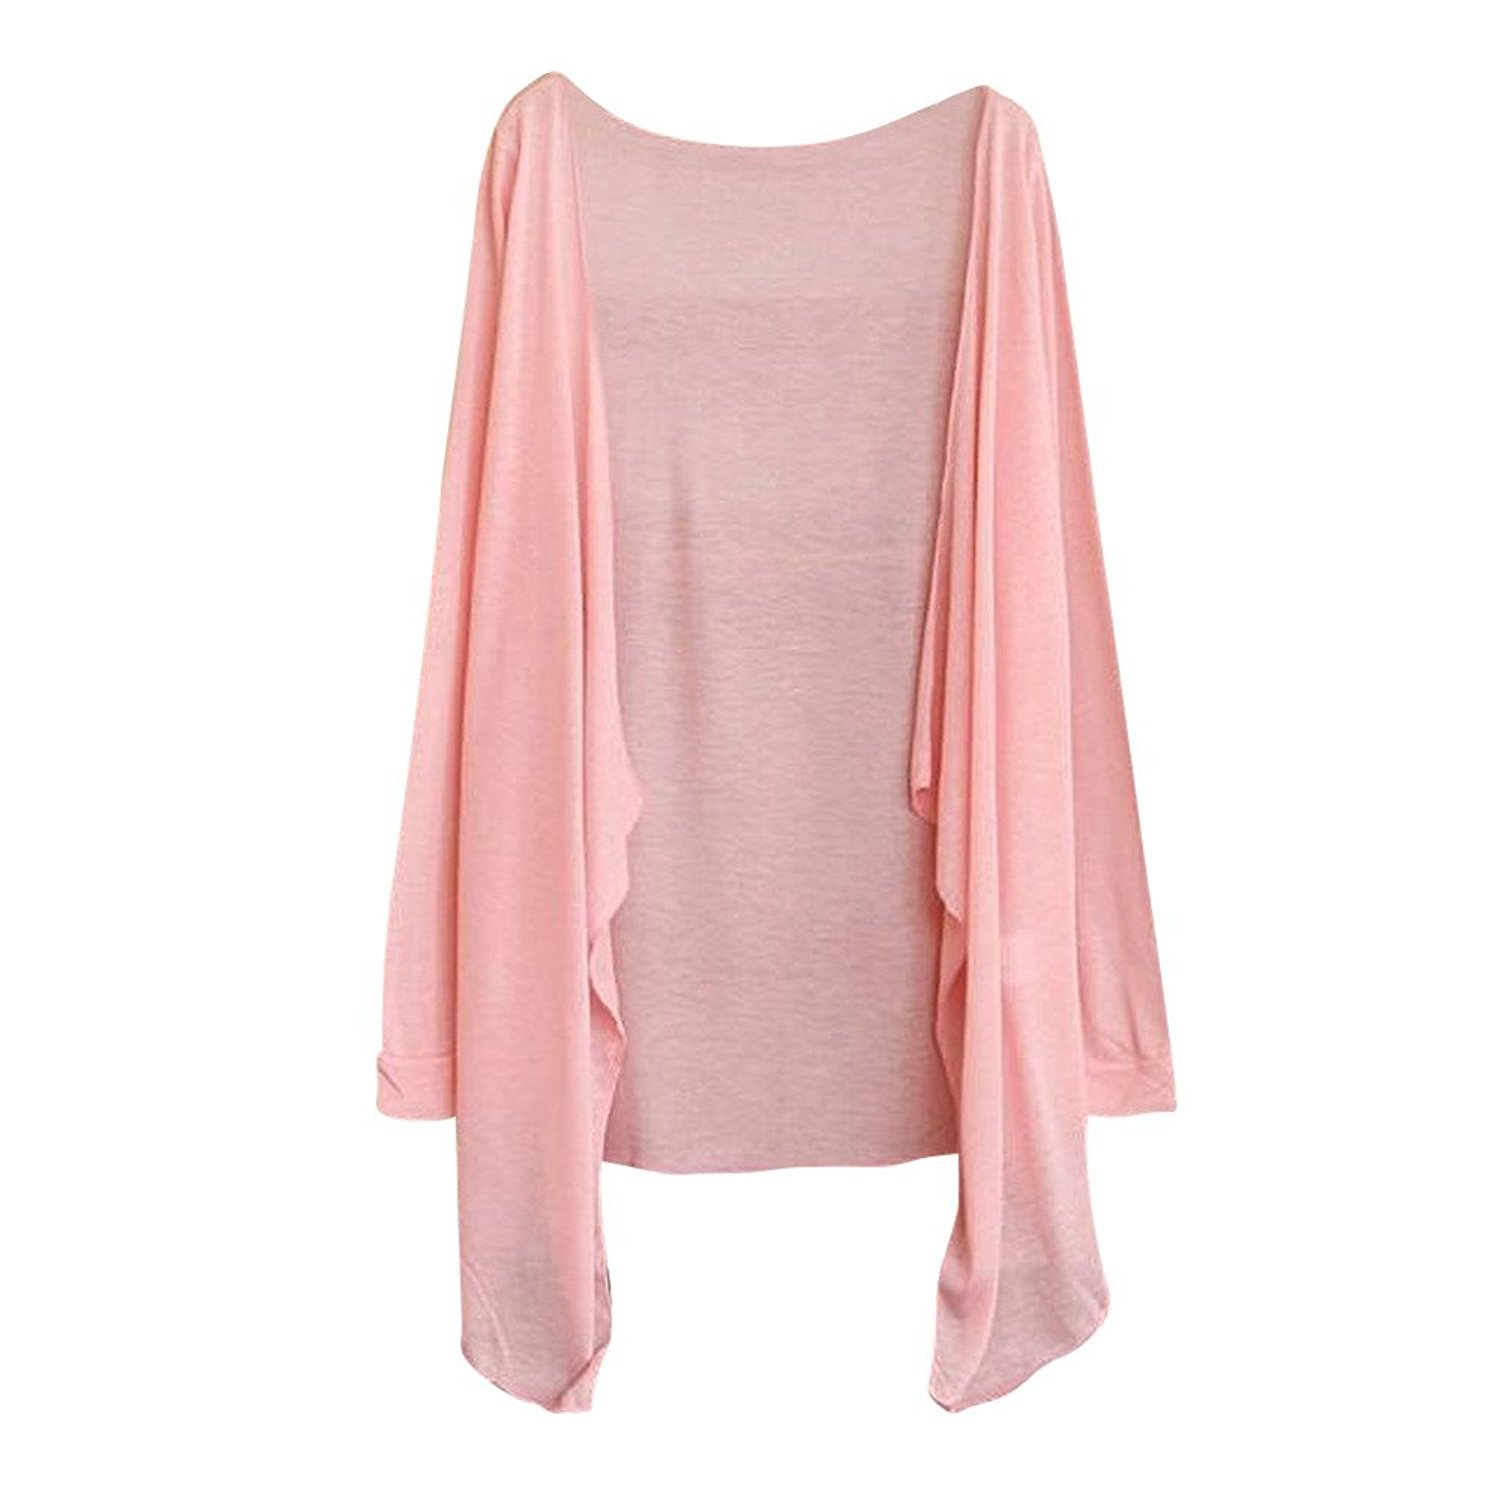 Womens Kimono Cardigans Long Blouse Thin Cover up Modal Sun Protection Clothing Tops Outwear